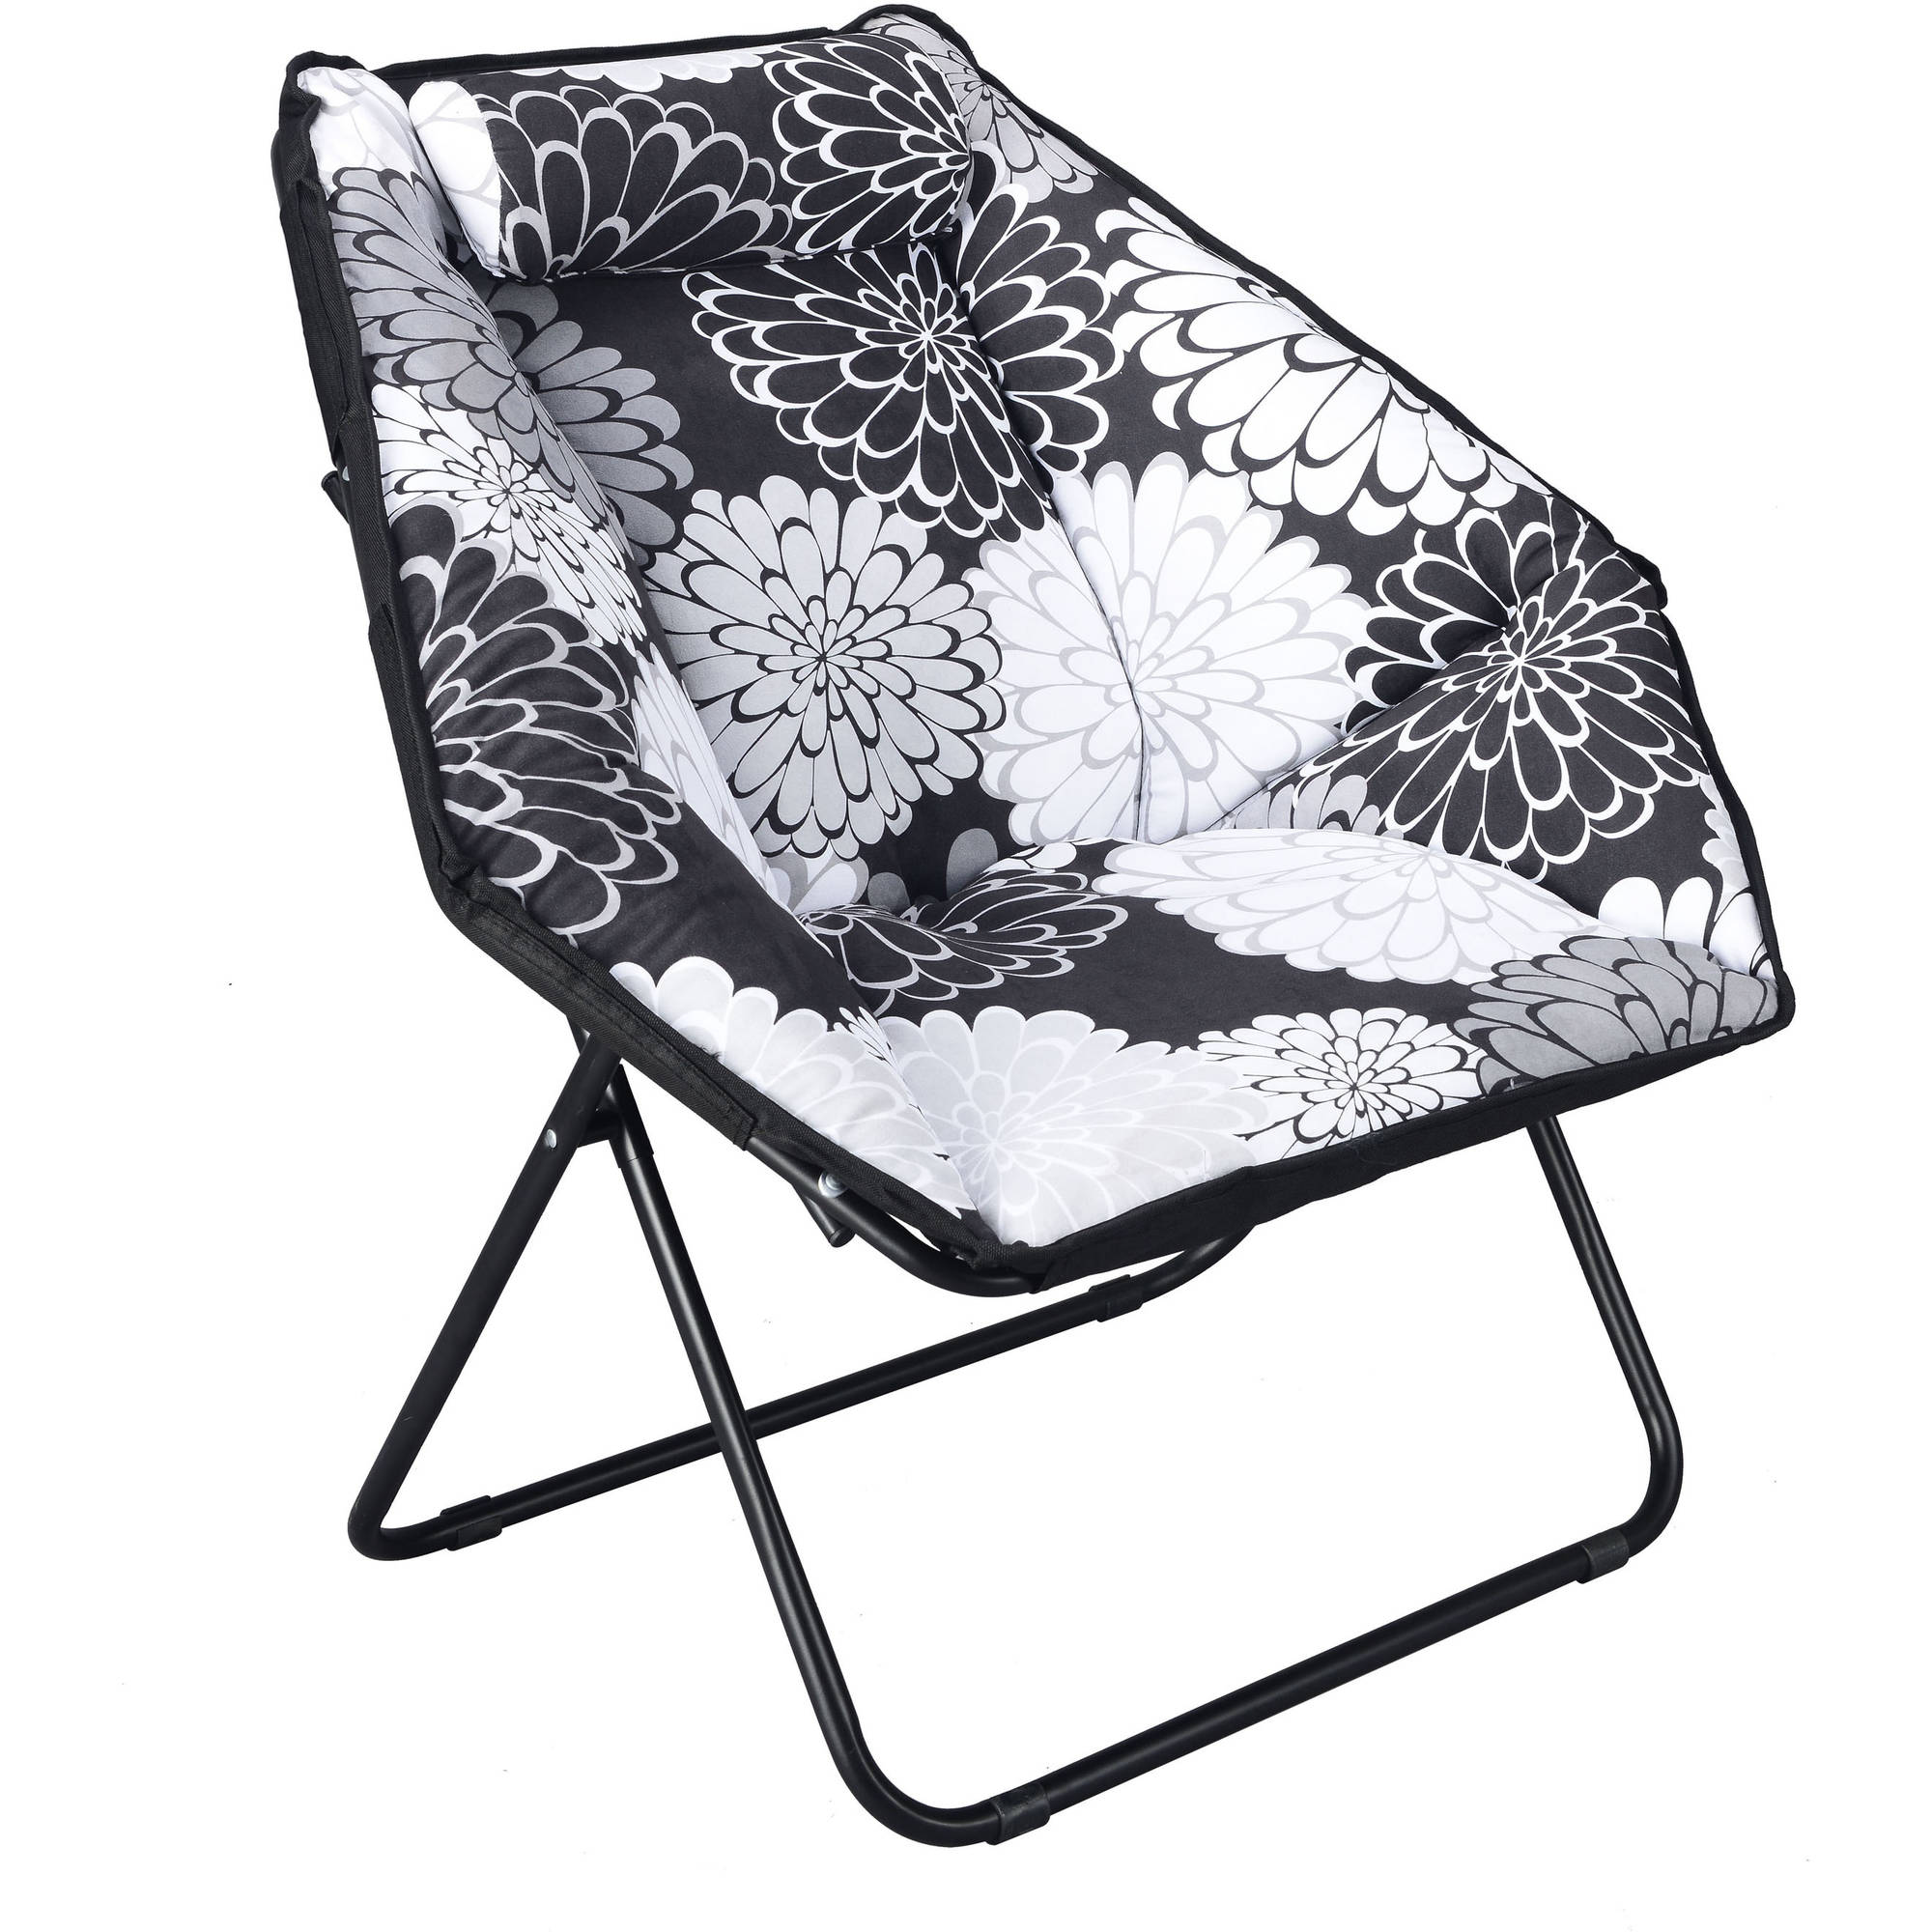 Soft Plush Hexagon Chair, Available in Multiple Colors